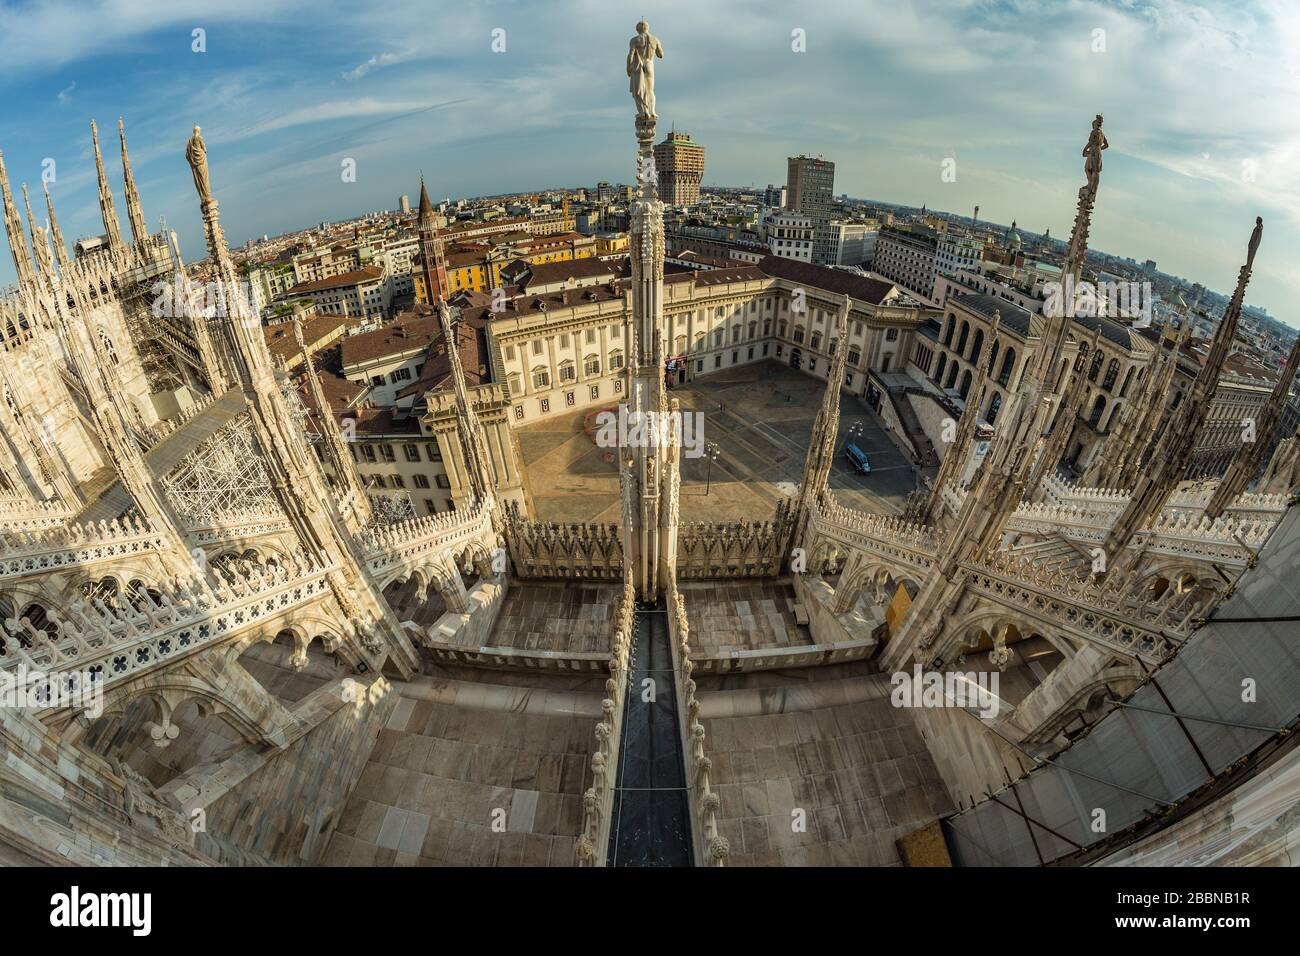 Milan Italy Aug 1 2019 Aerial View From The Roof Of Milan Cathedral Duomo Di Milano Lombardy Italy Fish Eye Lens Shot Stock Photo Alamy